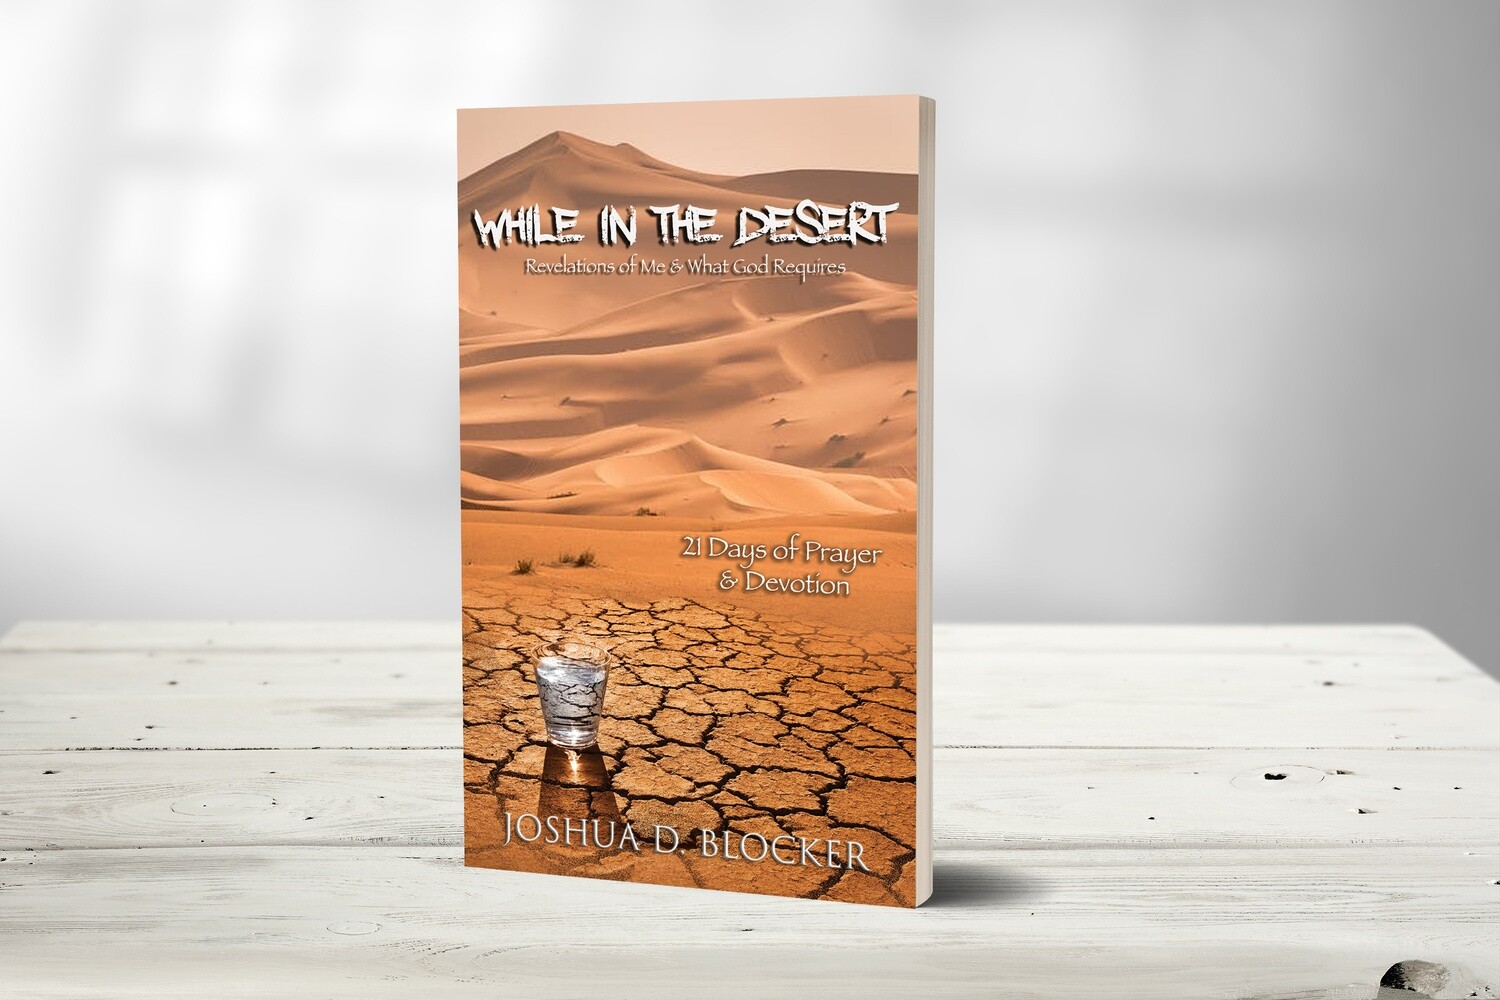 While In the Desert